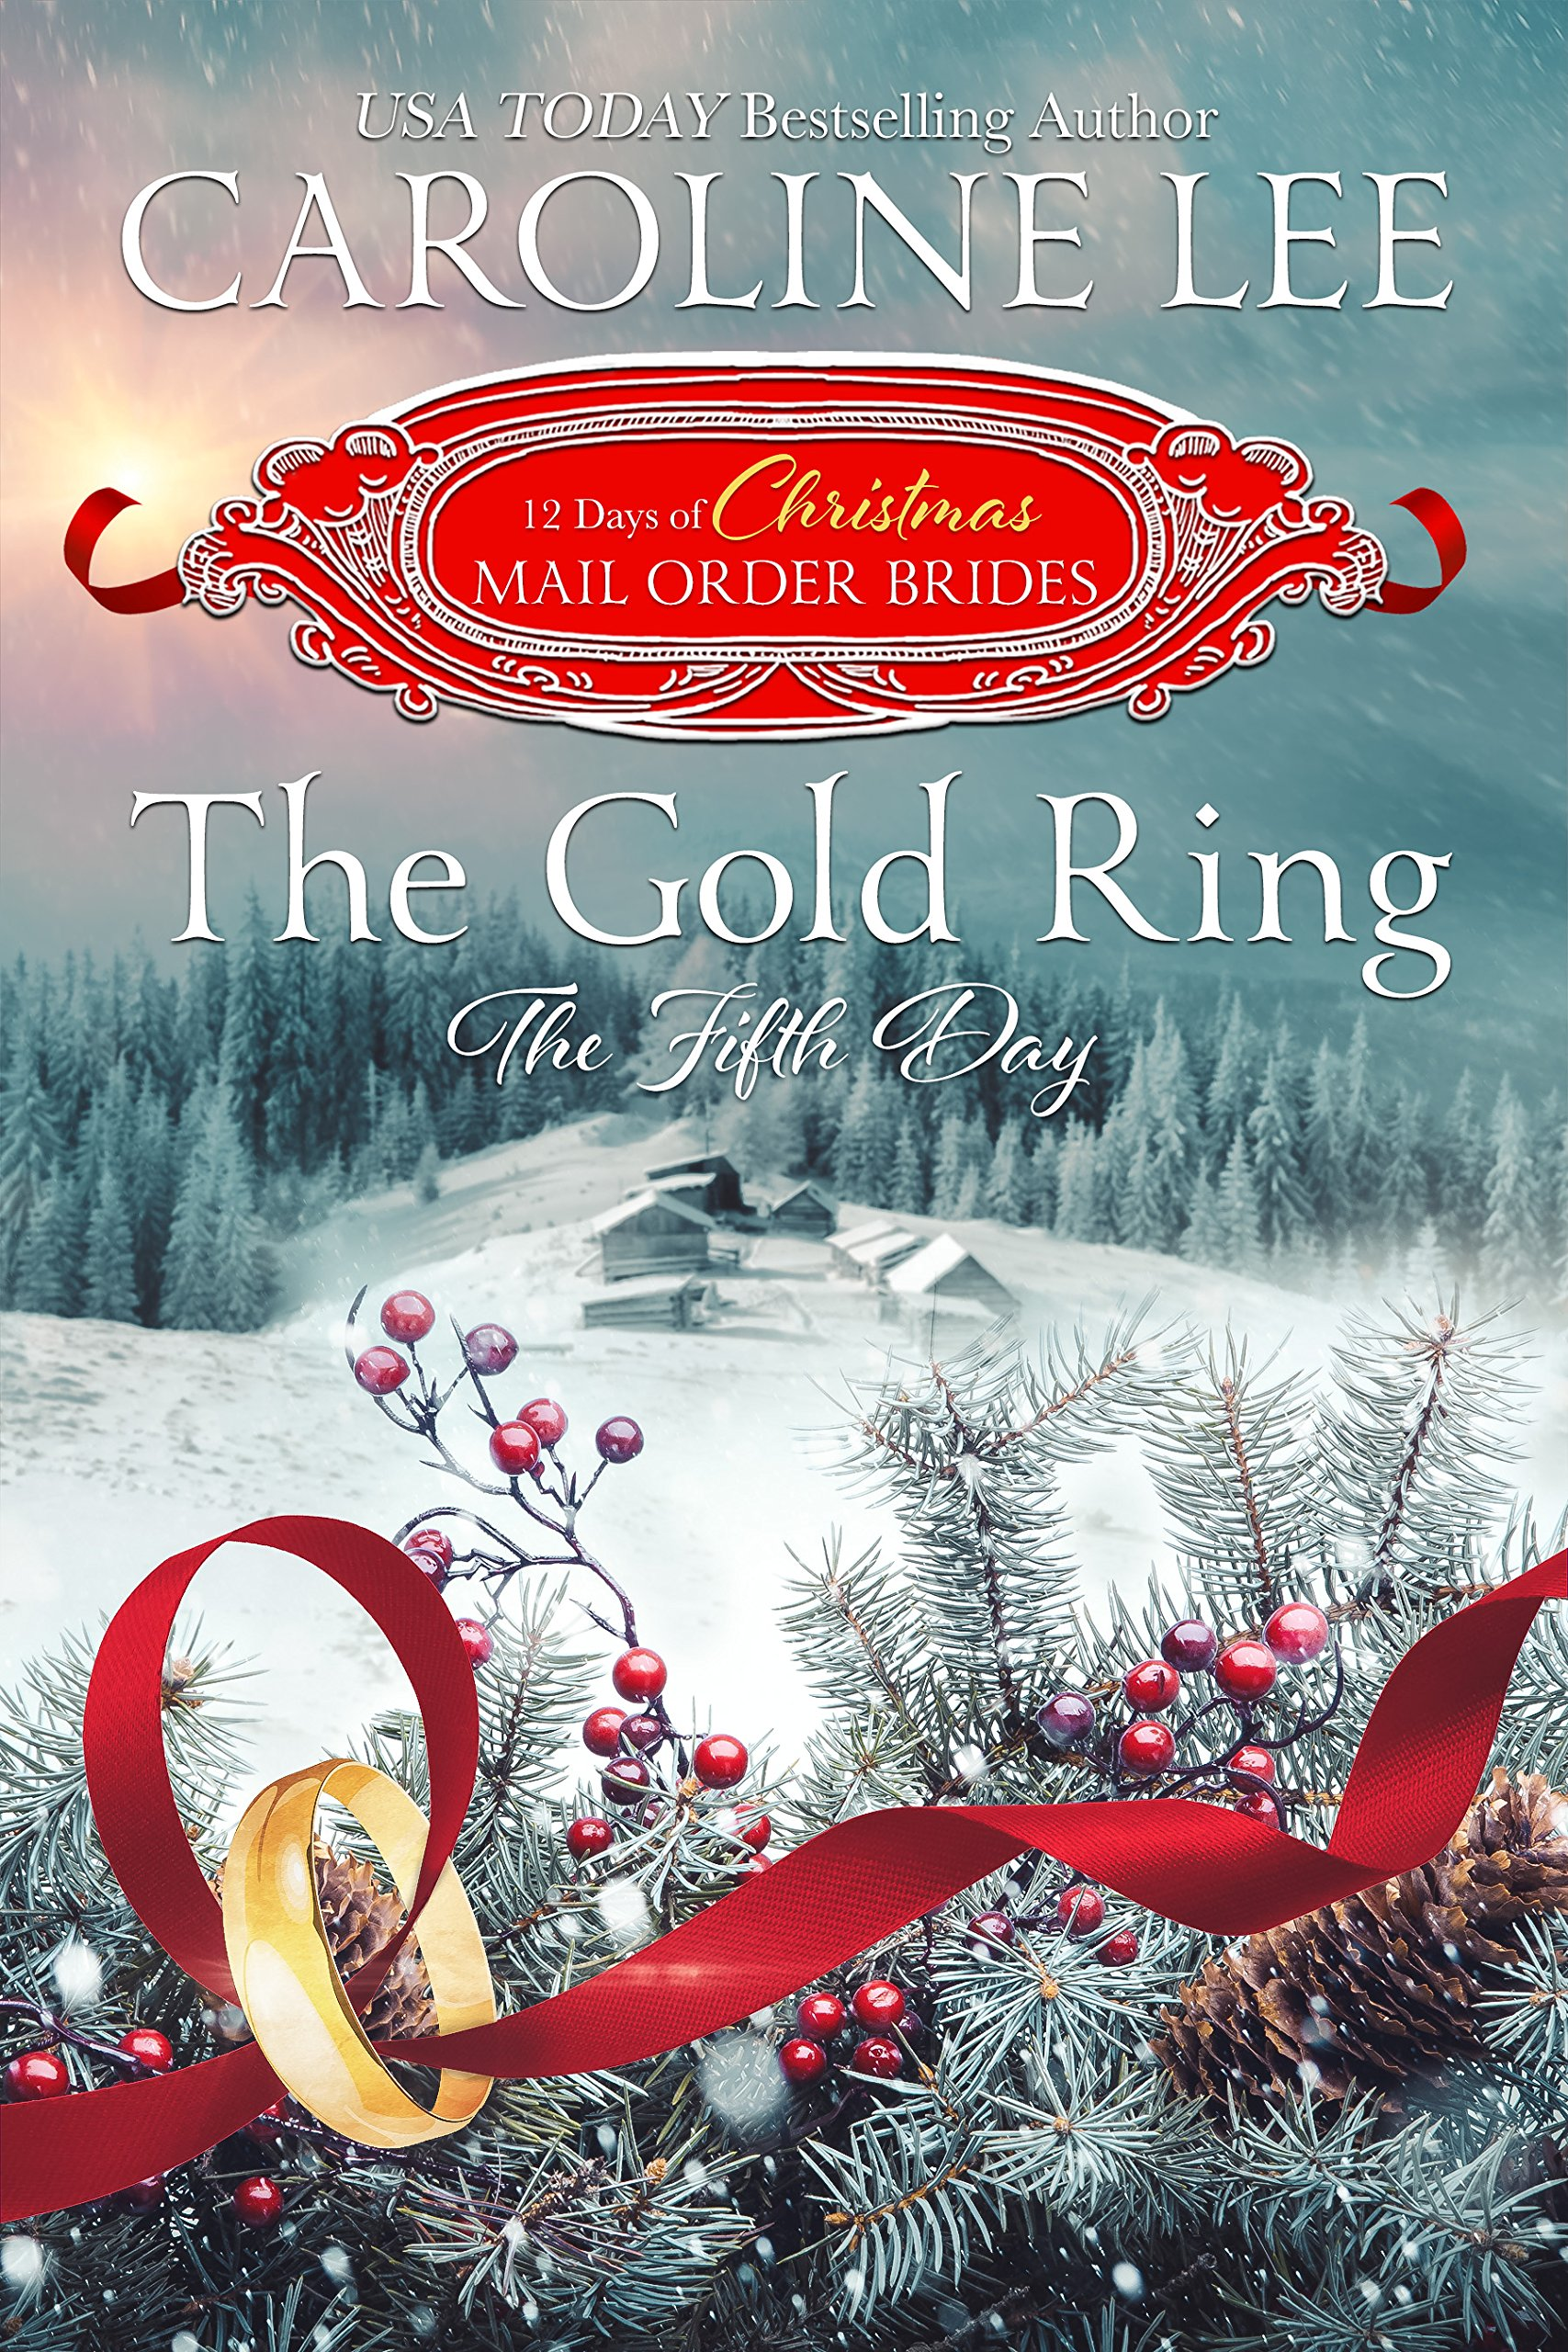 The Gold Ring: the Fifth Day